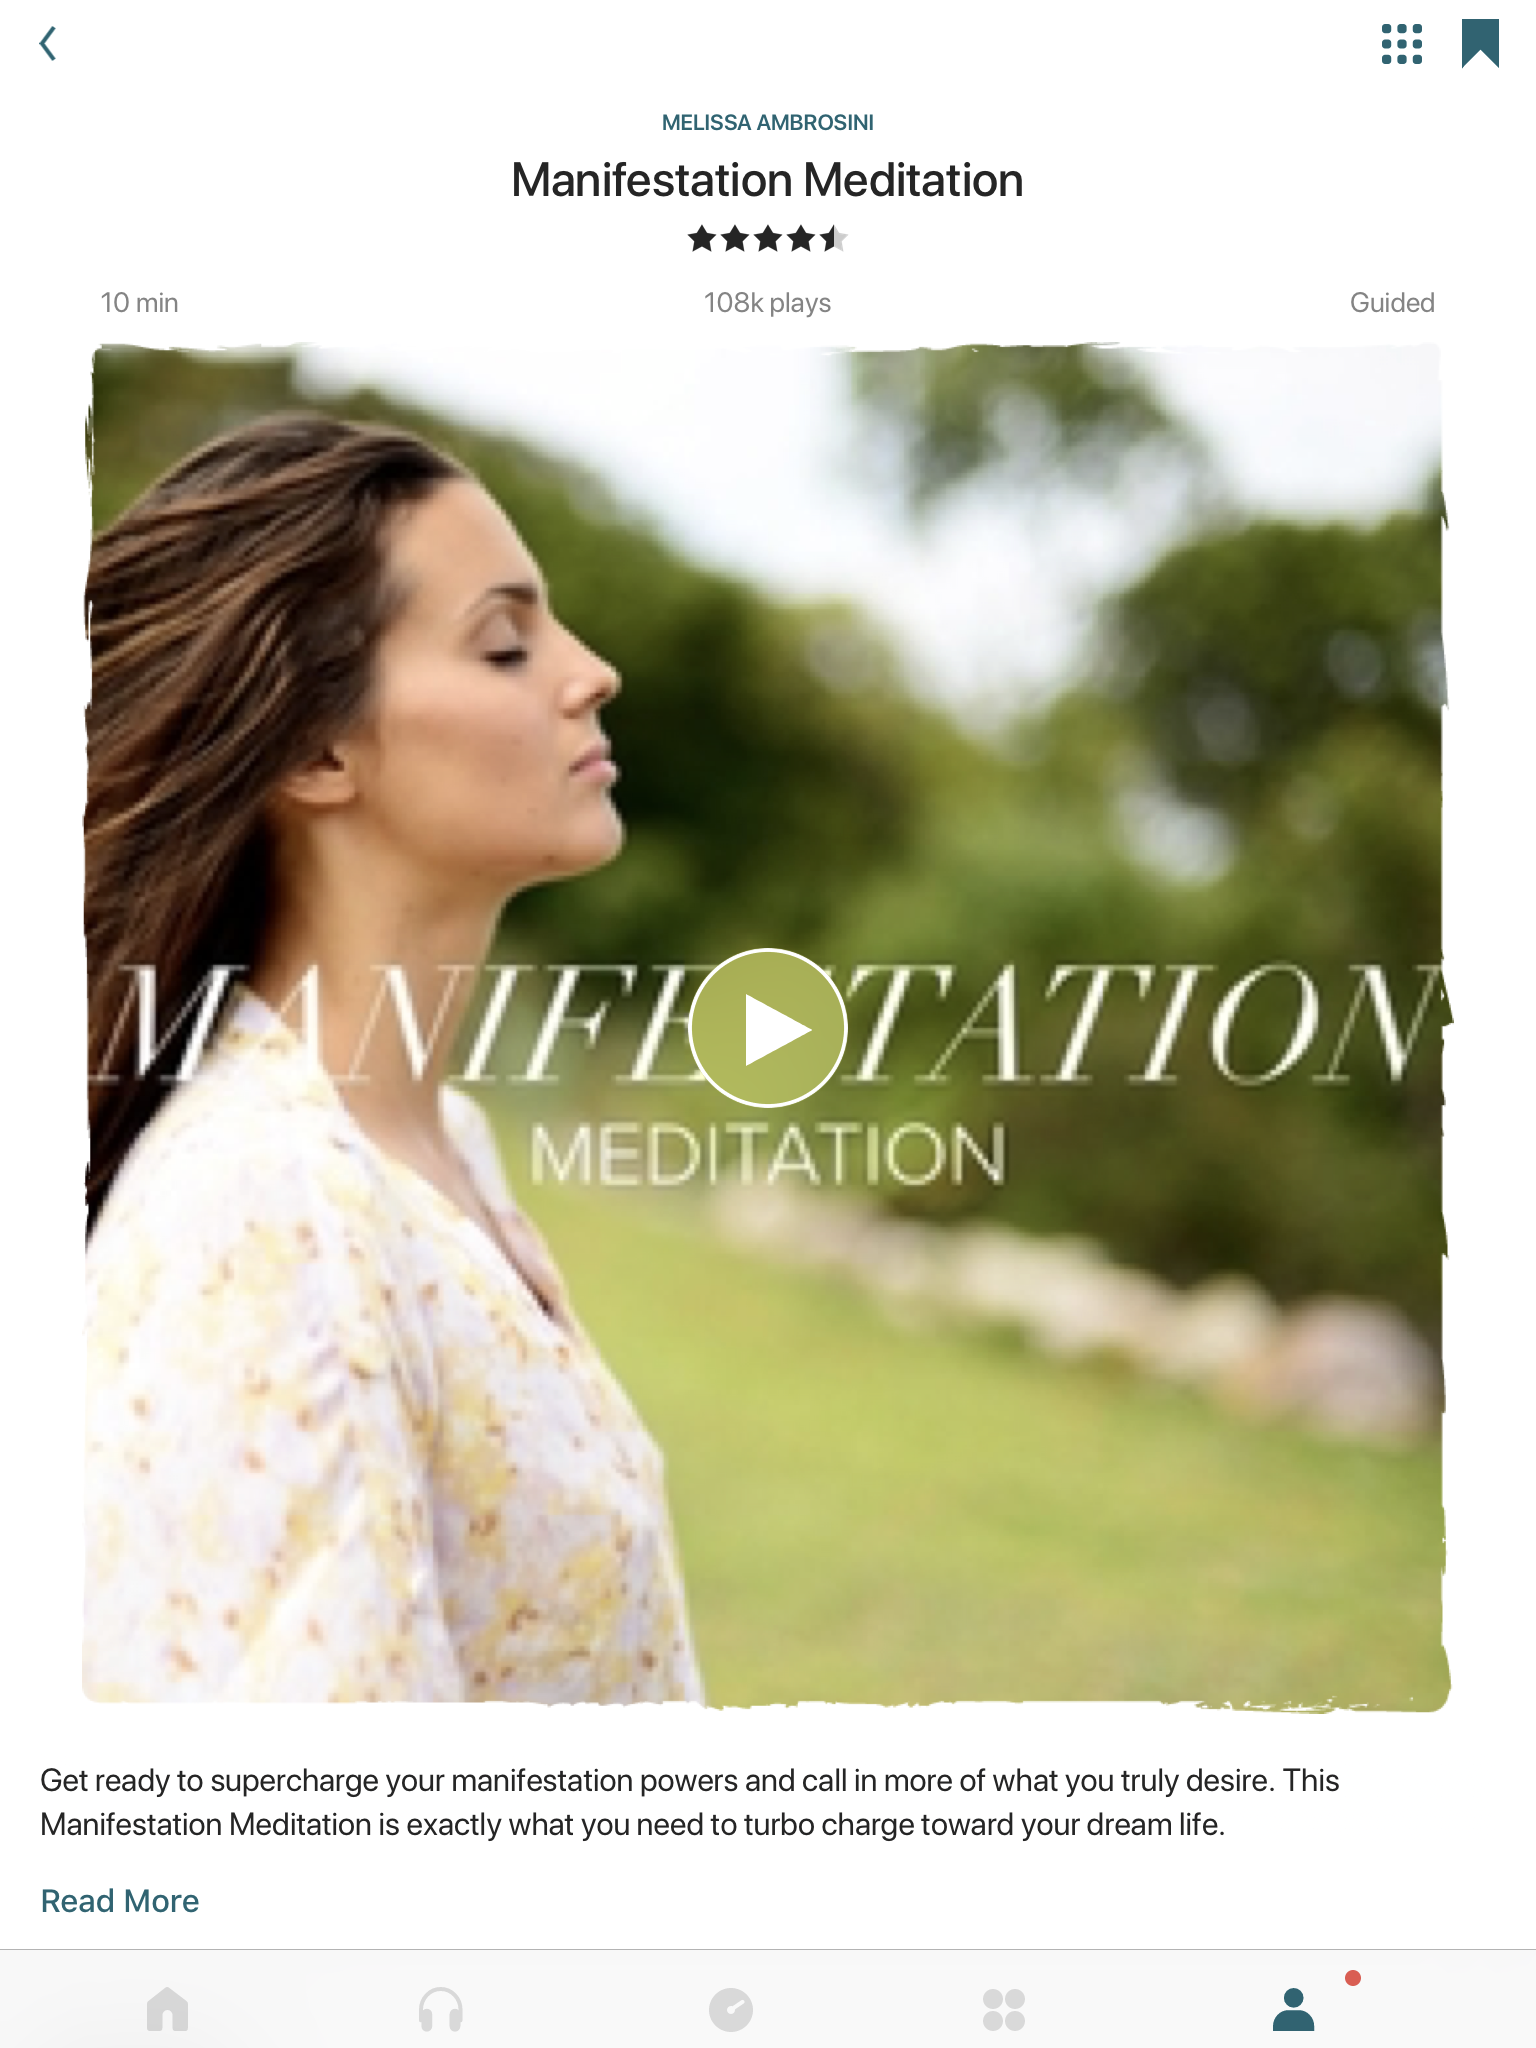 HOW MEDITATION CHANGED MY LIFE, AND HOW IT CAN CHANGE YOURS! come learn more at www.gossamerydreams.com